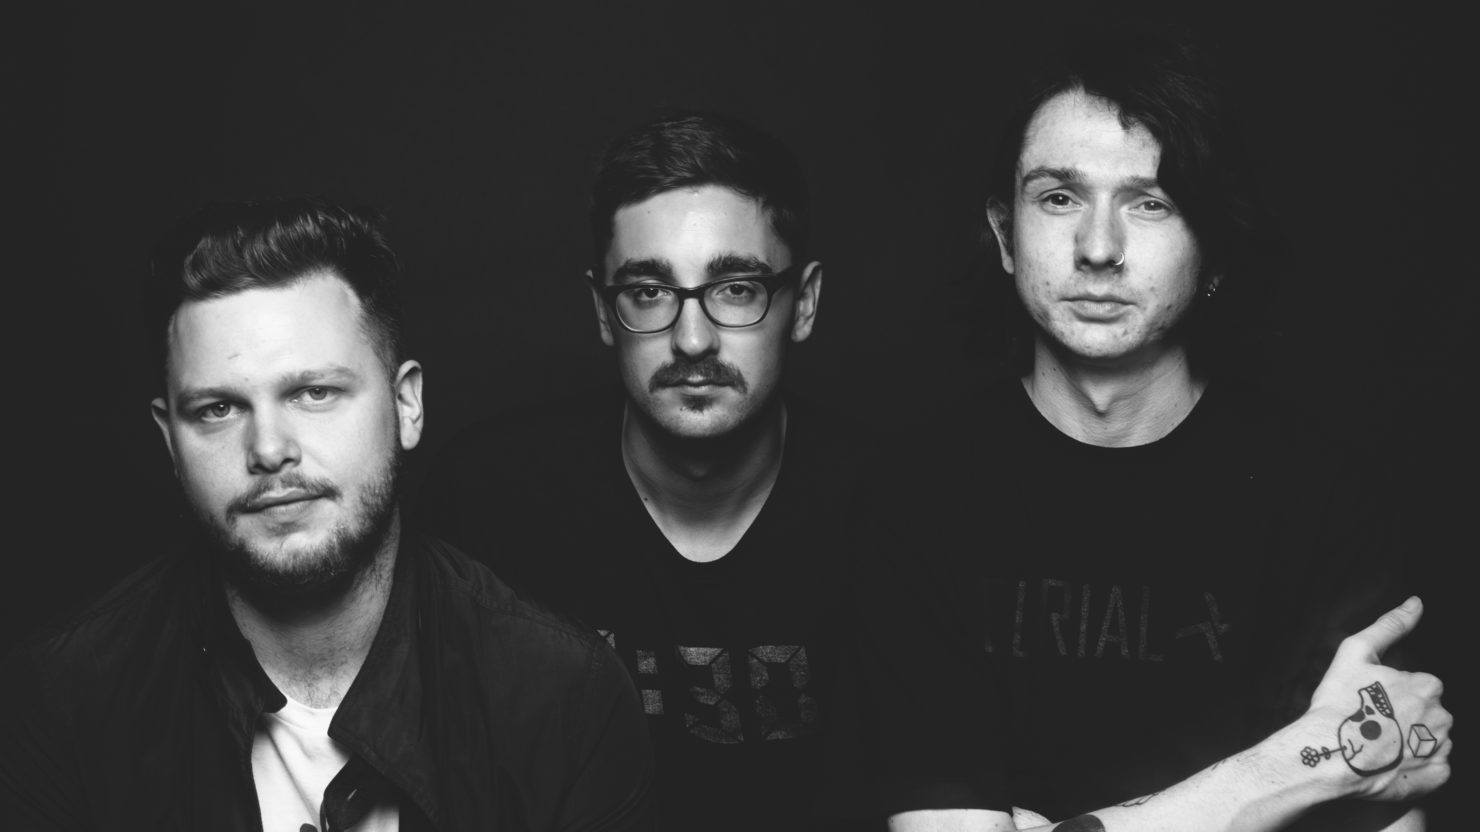 Alt-J-Press-Crop-Marcus-Haney--1480x832.jpg (1480×832)